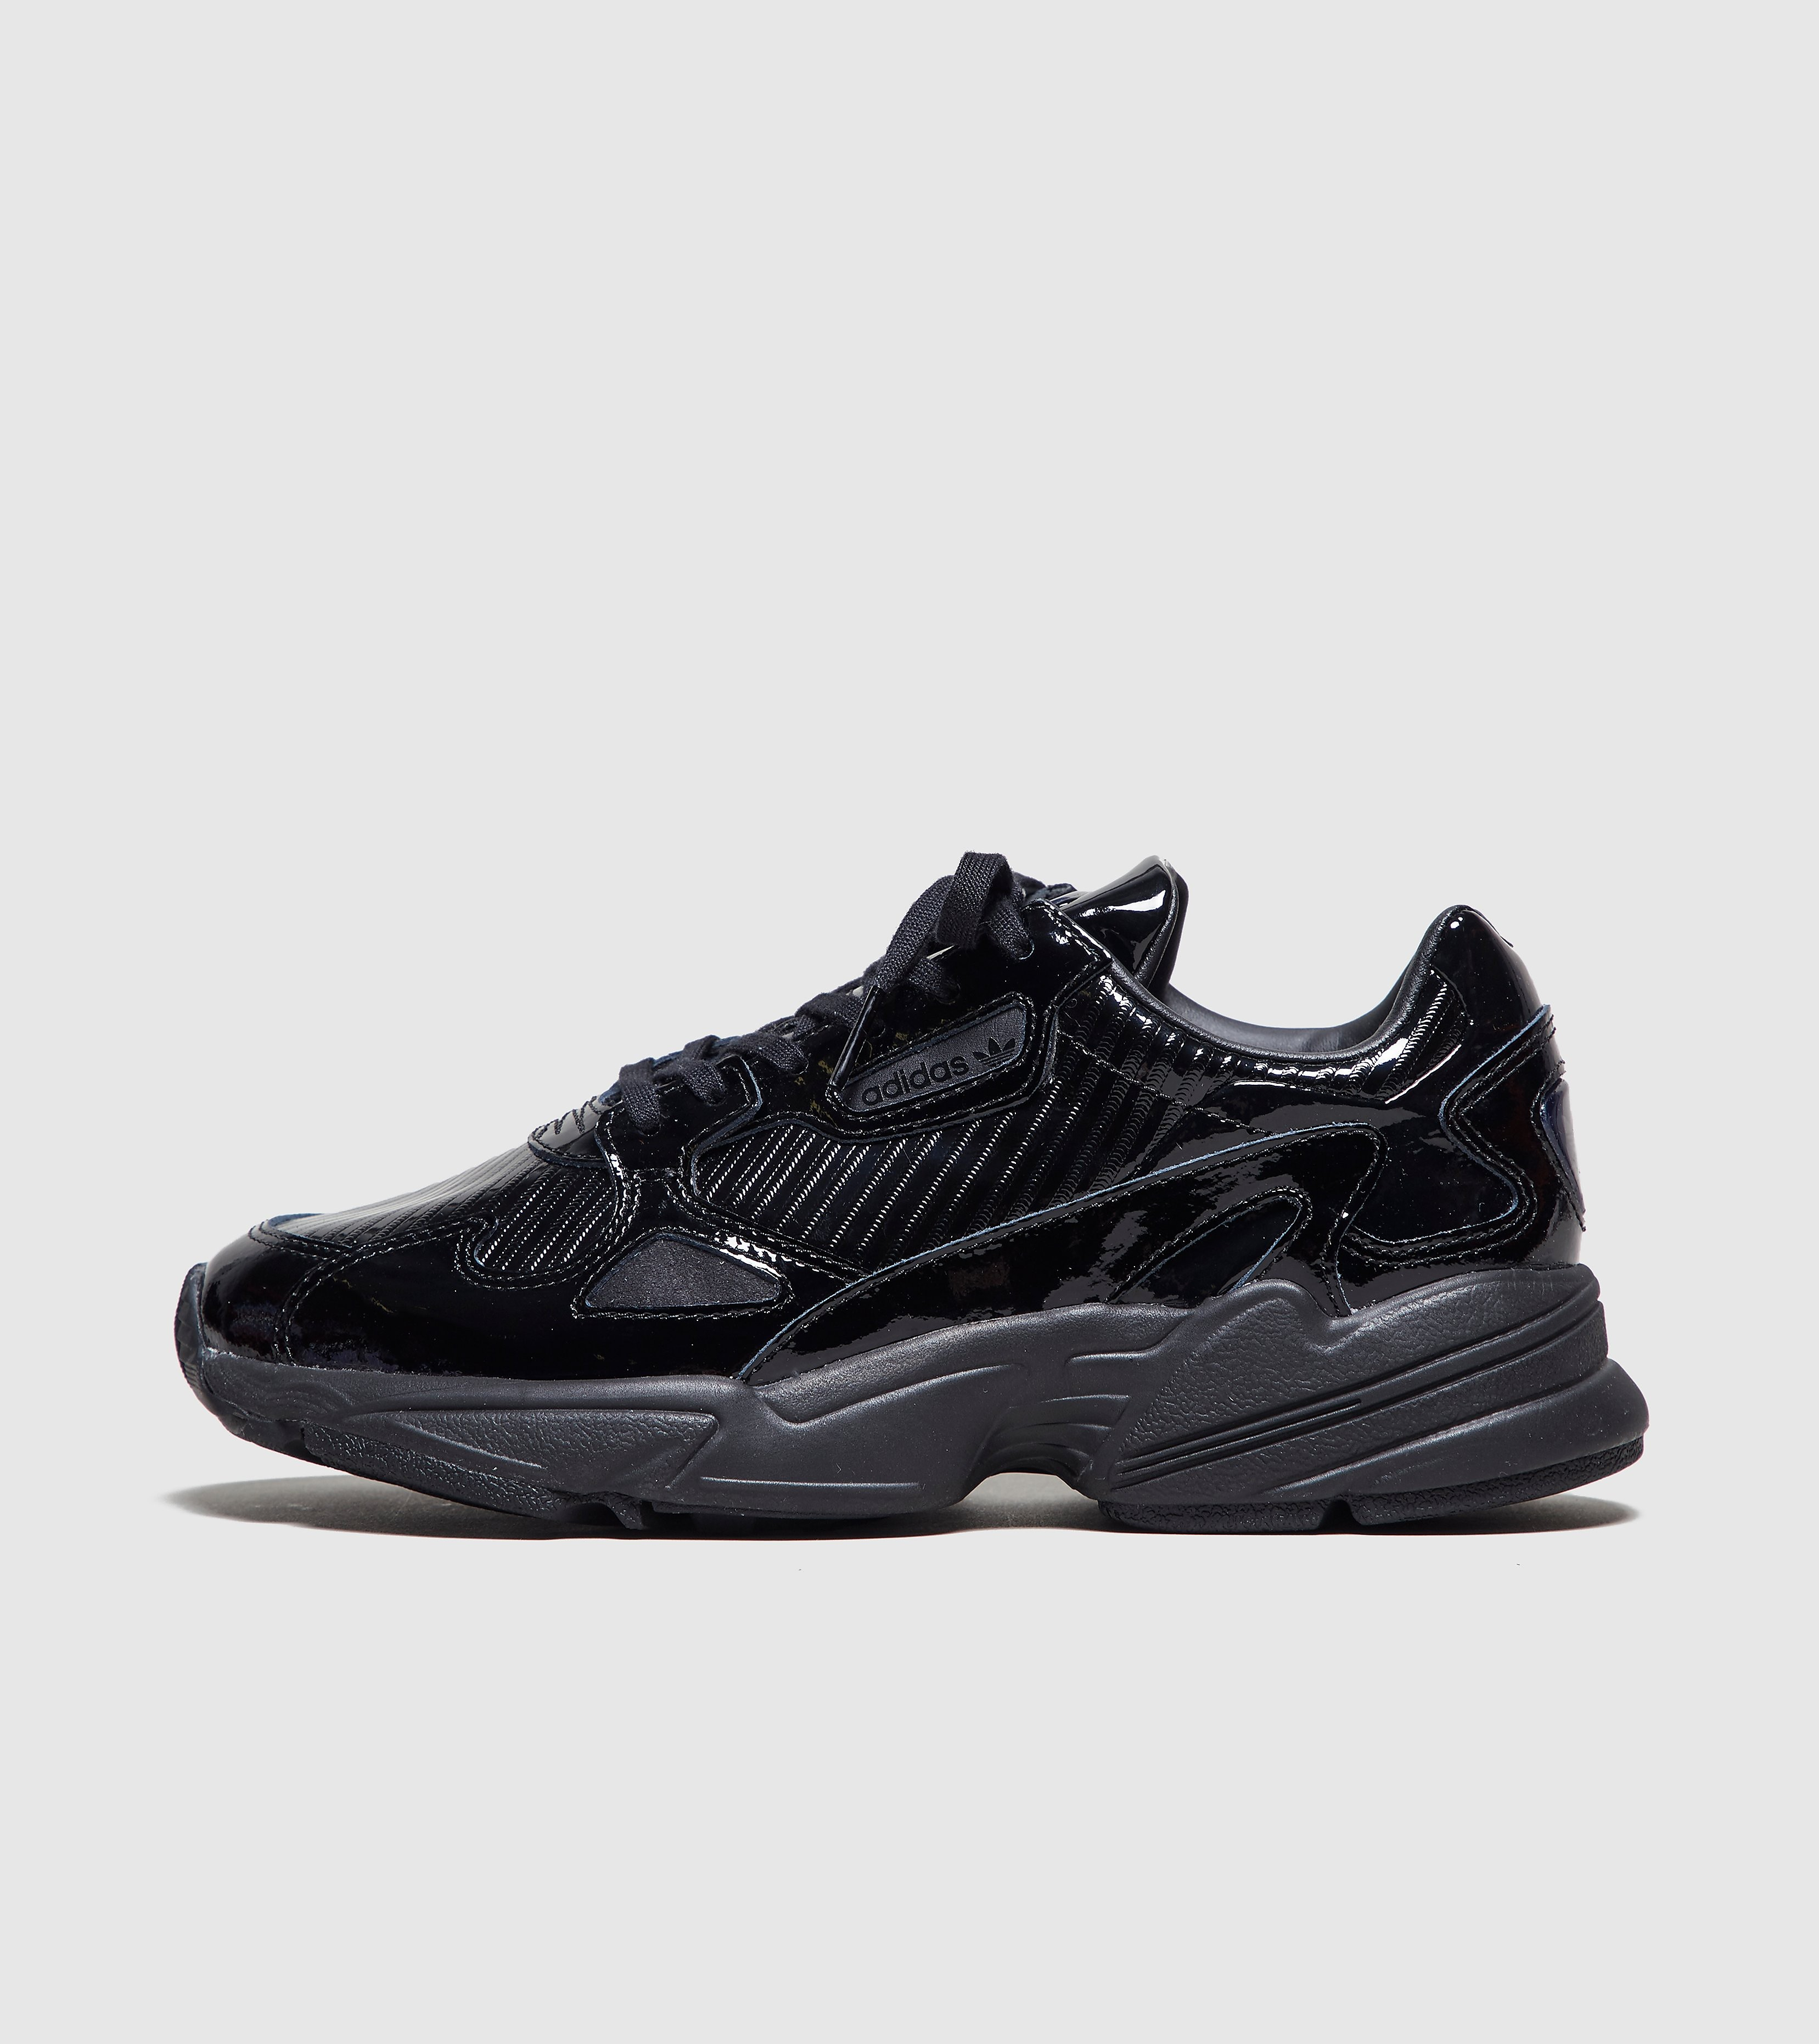 Sneaker Adidas adidas Originals Falcon Leather Women's